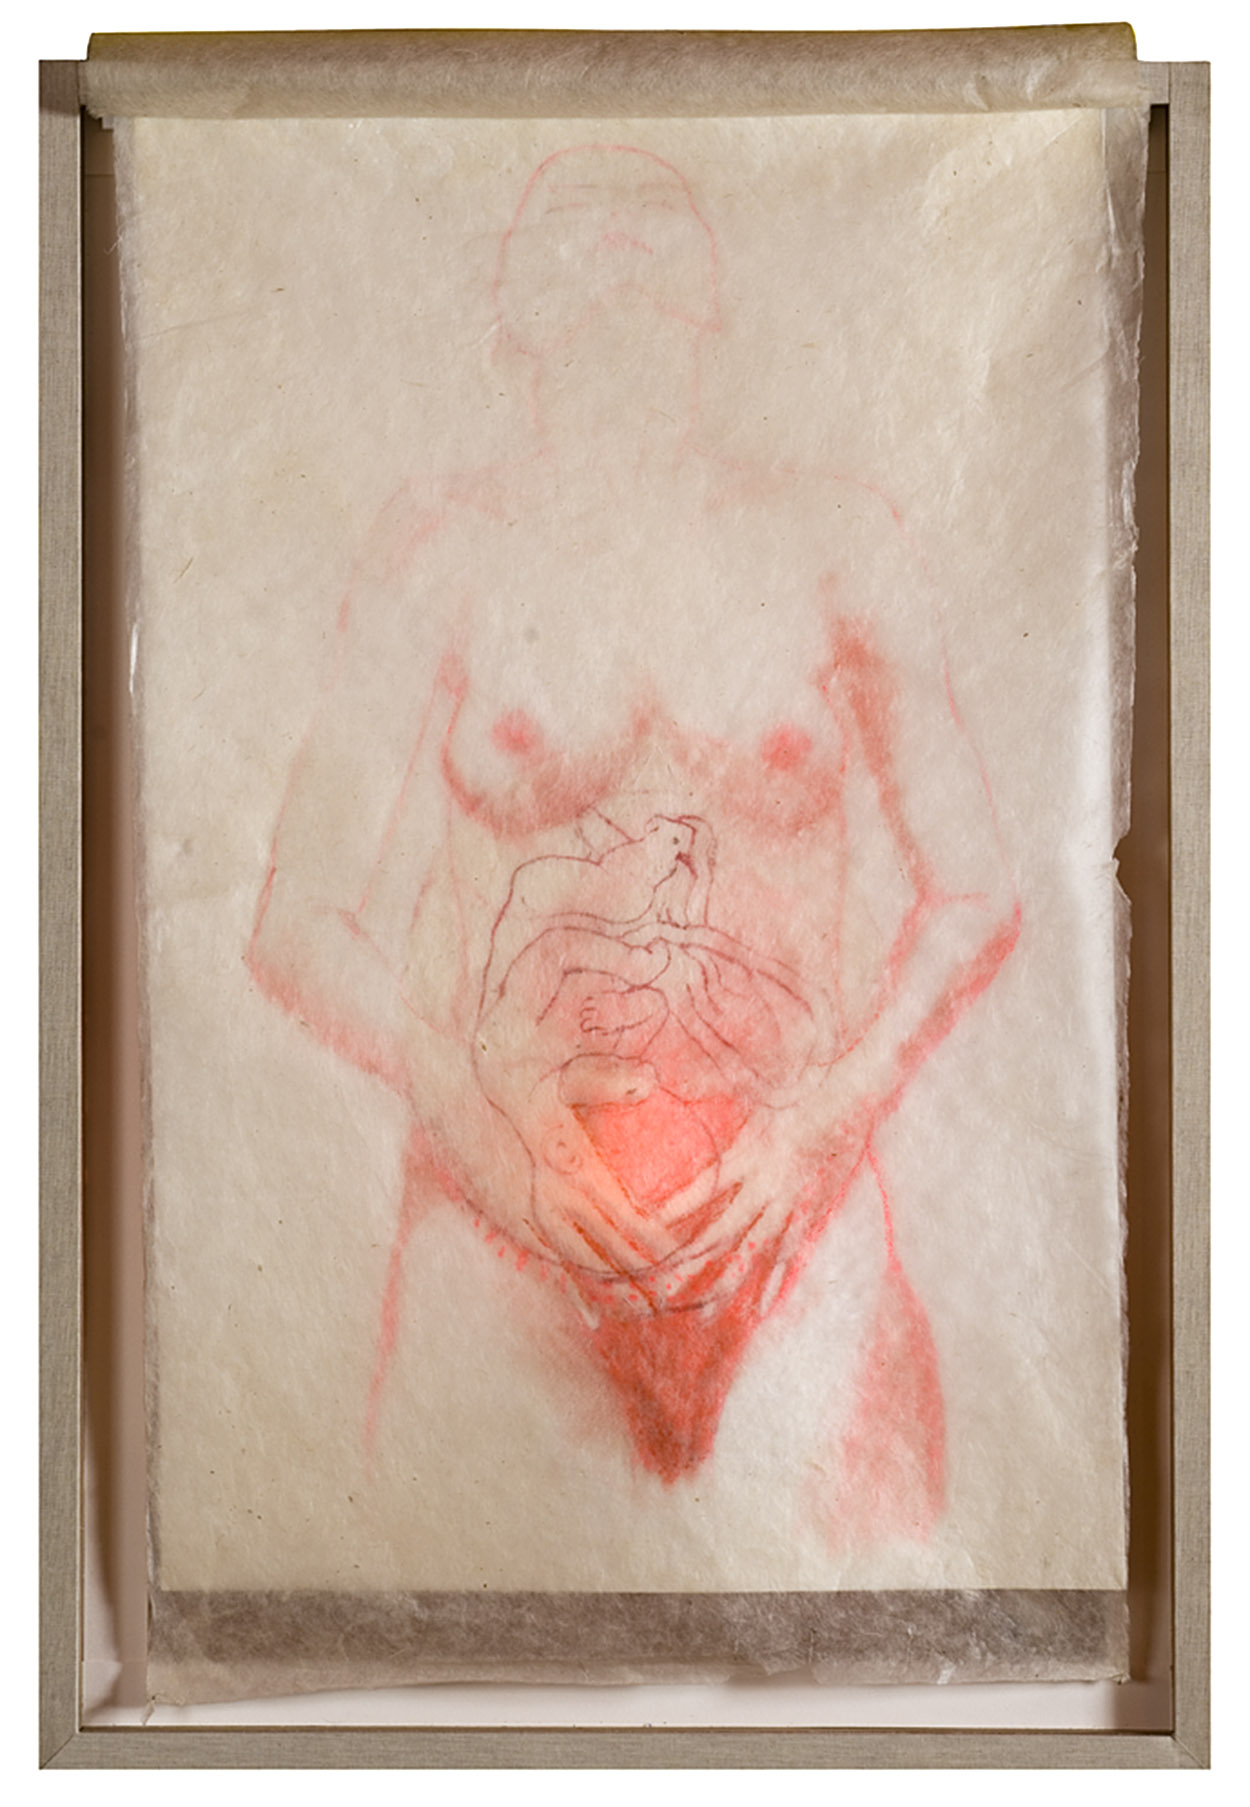 Yearning I    / Anhelo I, Serie: Dar a luz  Pencil, wax, light that flickers when switched on. 70 x 100 cm.